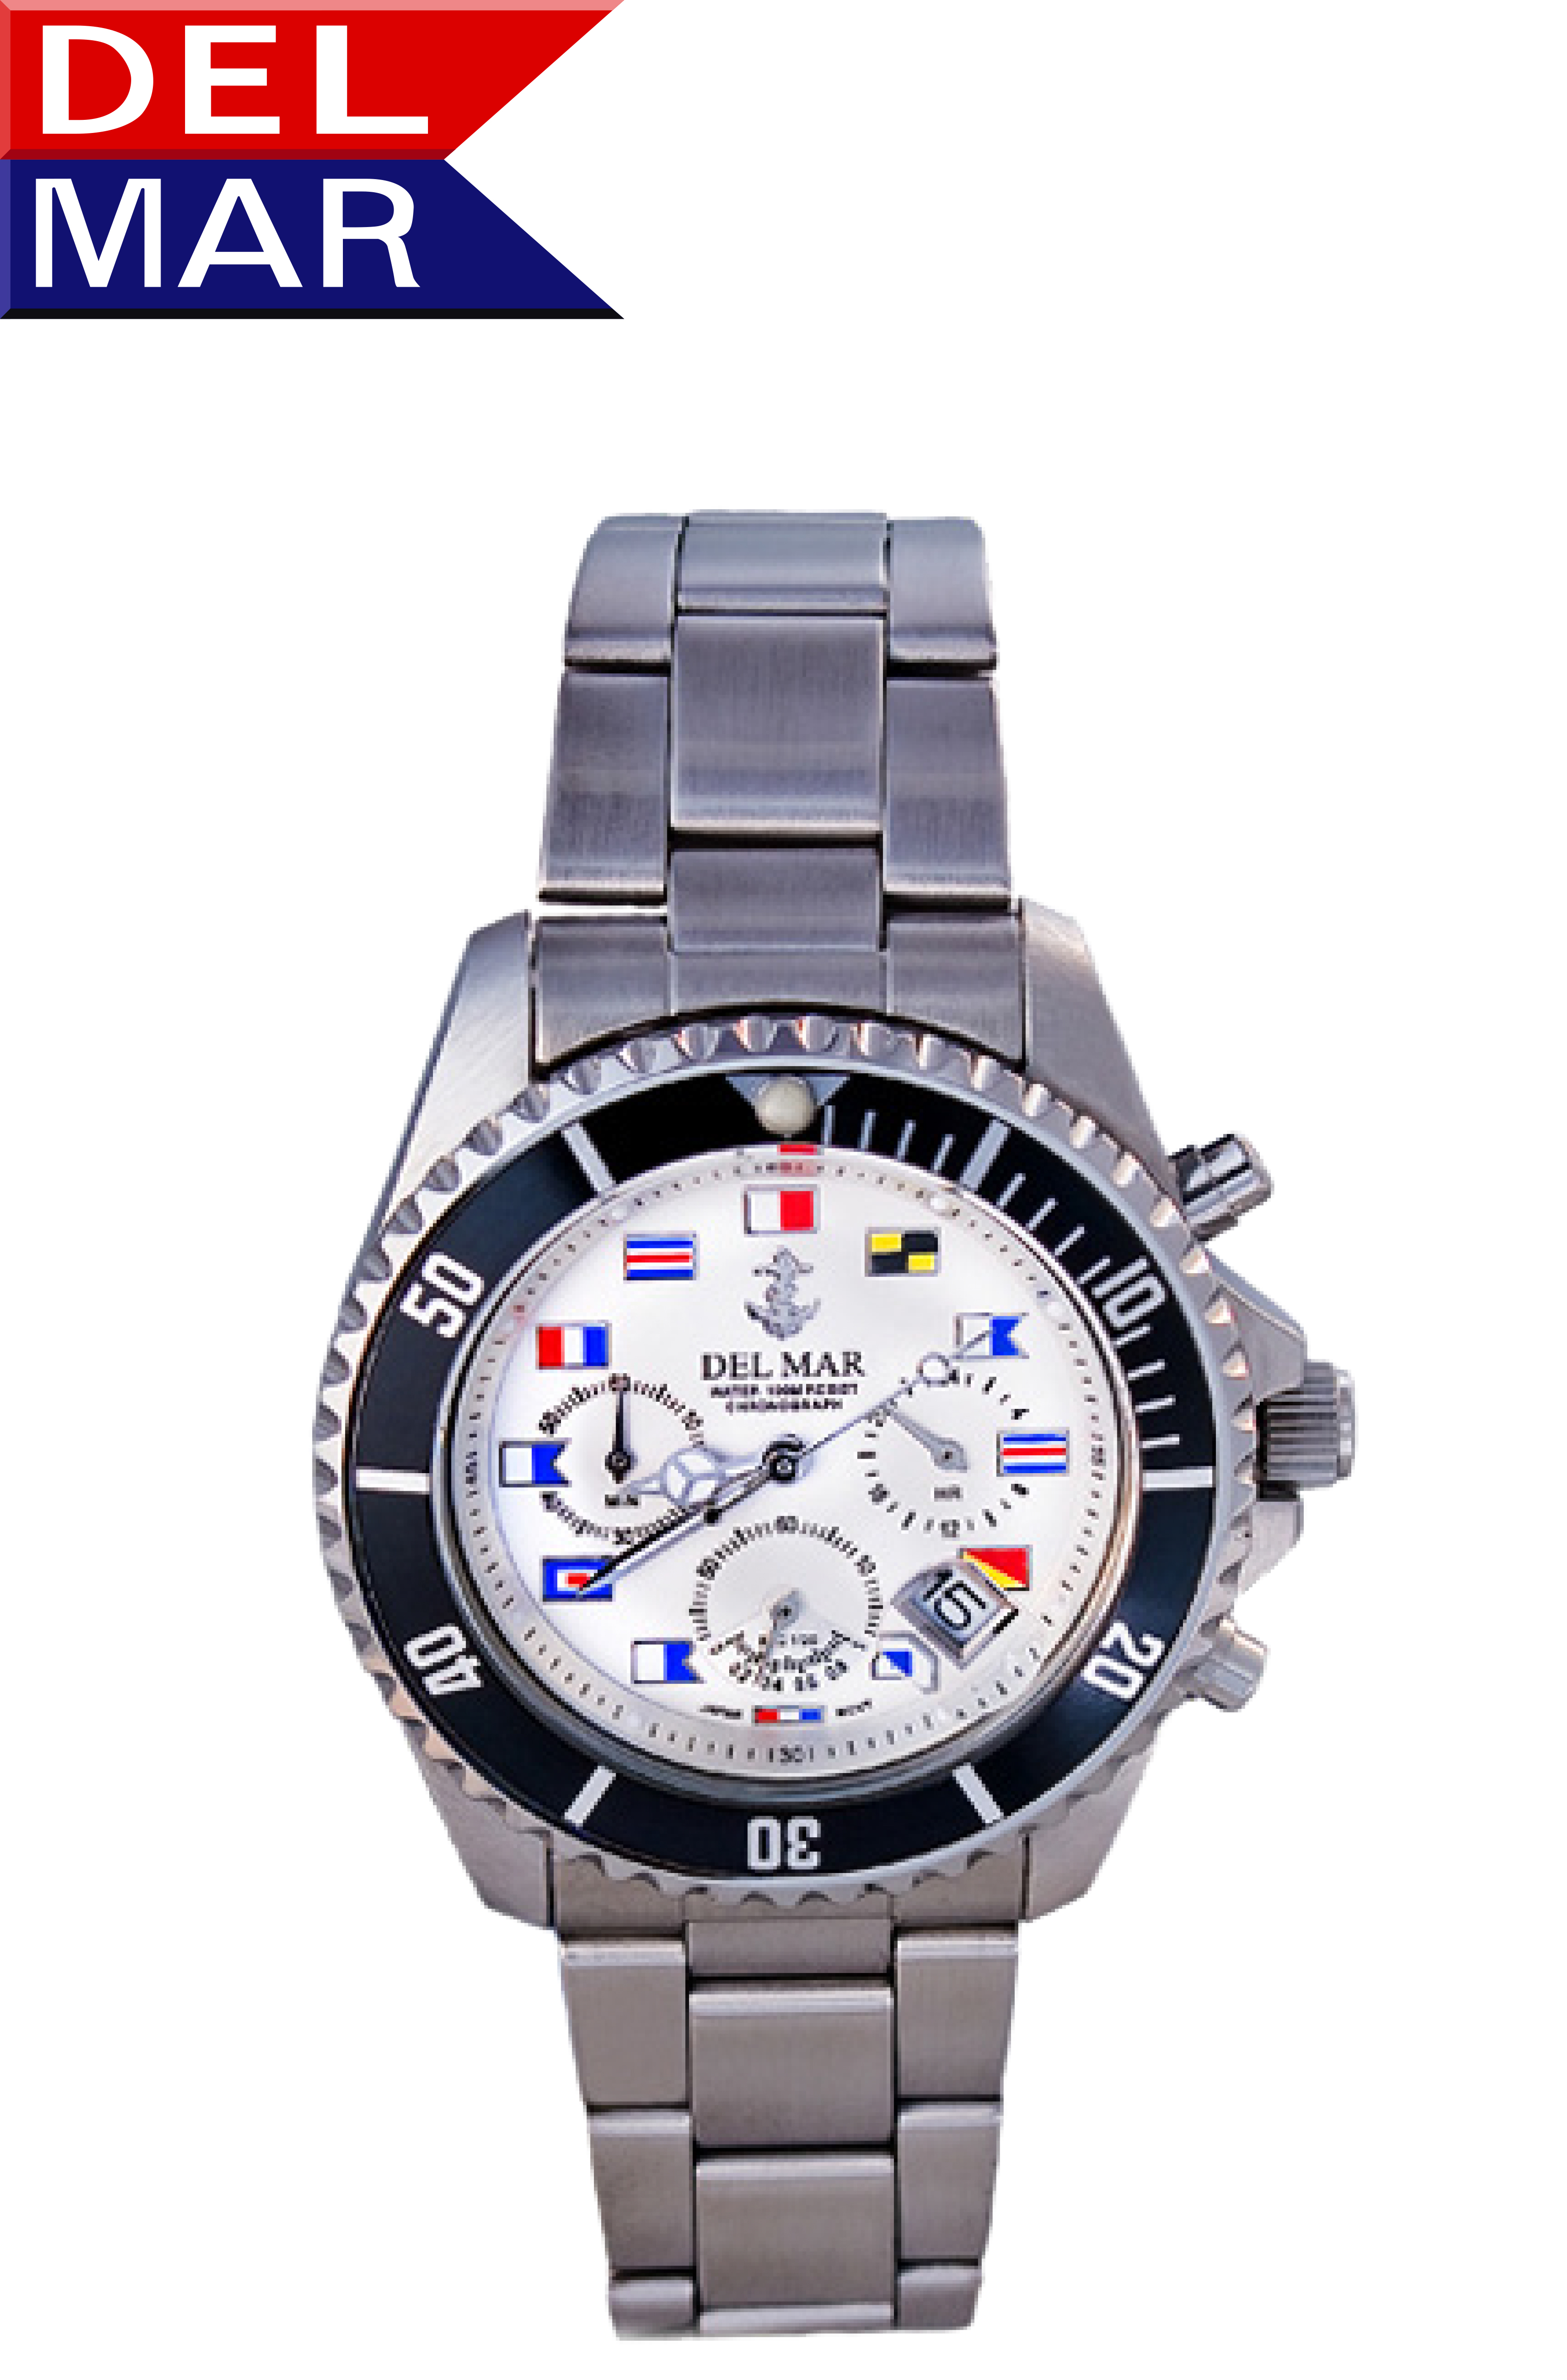 bfaf overstock shipping orders over timex alarm digital watch expedition s men jewelry rugged watches vibration free product on rug mens